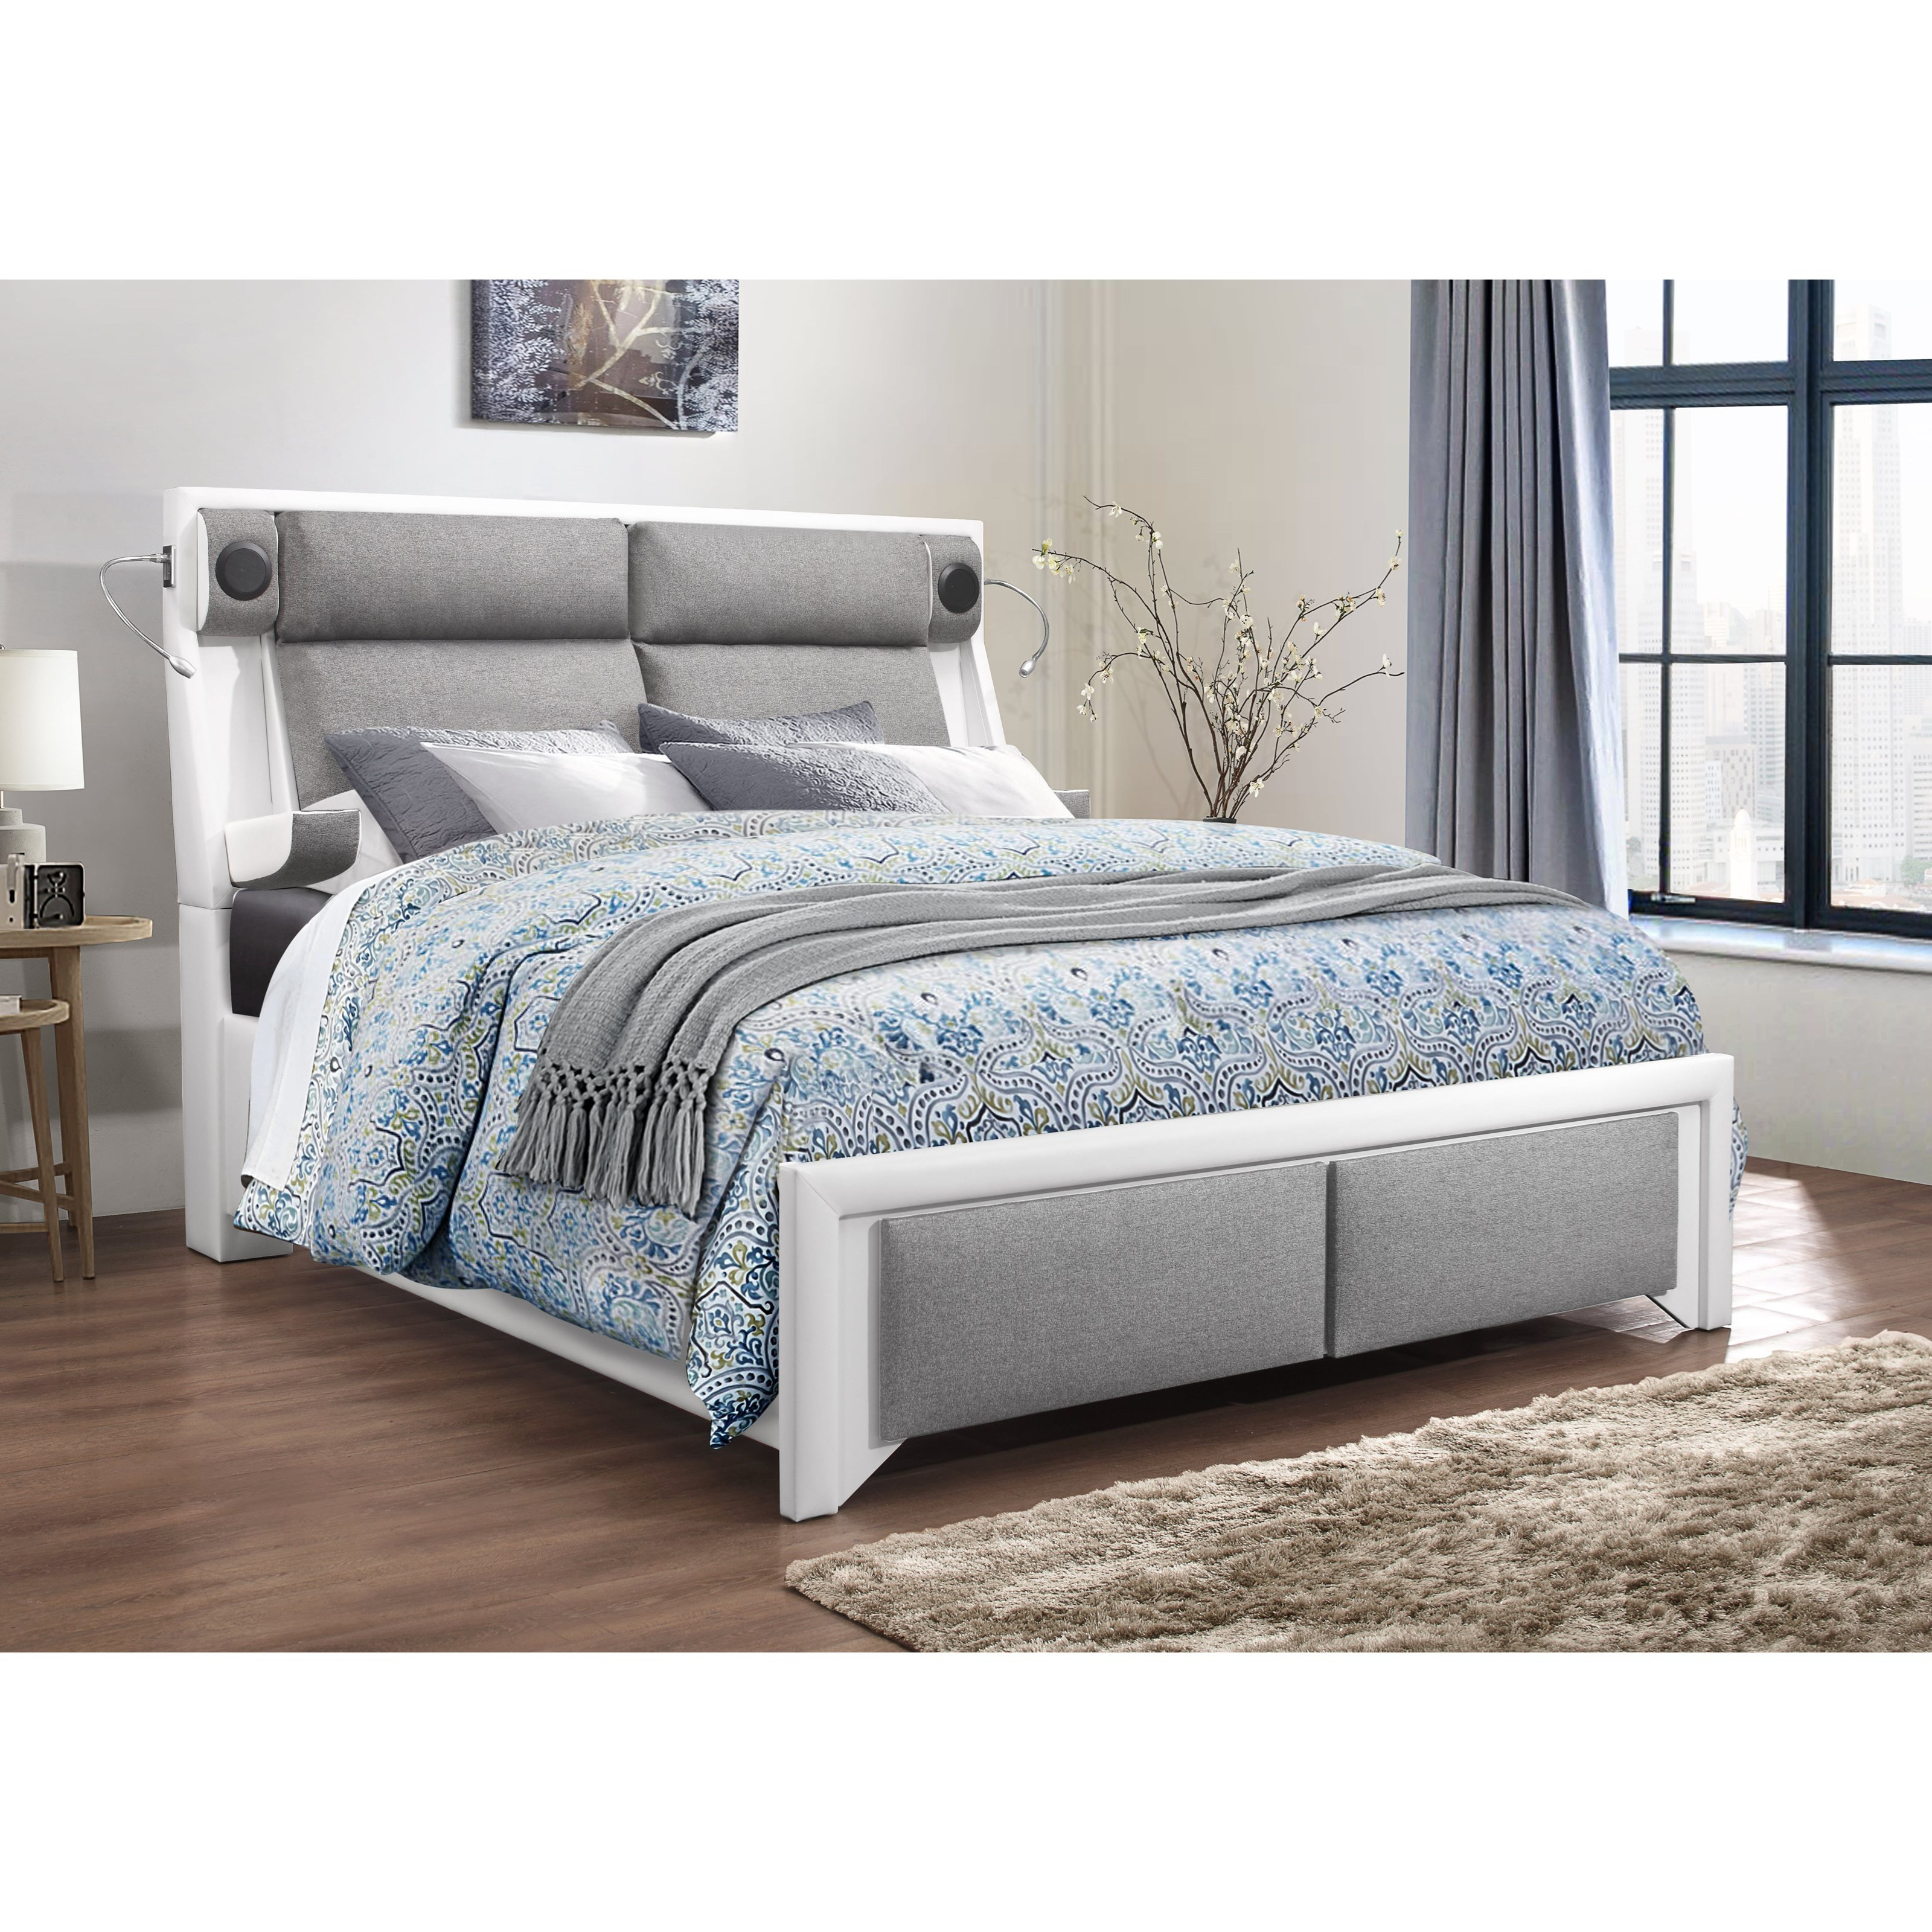 9652 Upholstered Queen Bed by Global Furniture at Nassau Furniture and Mattress